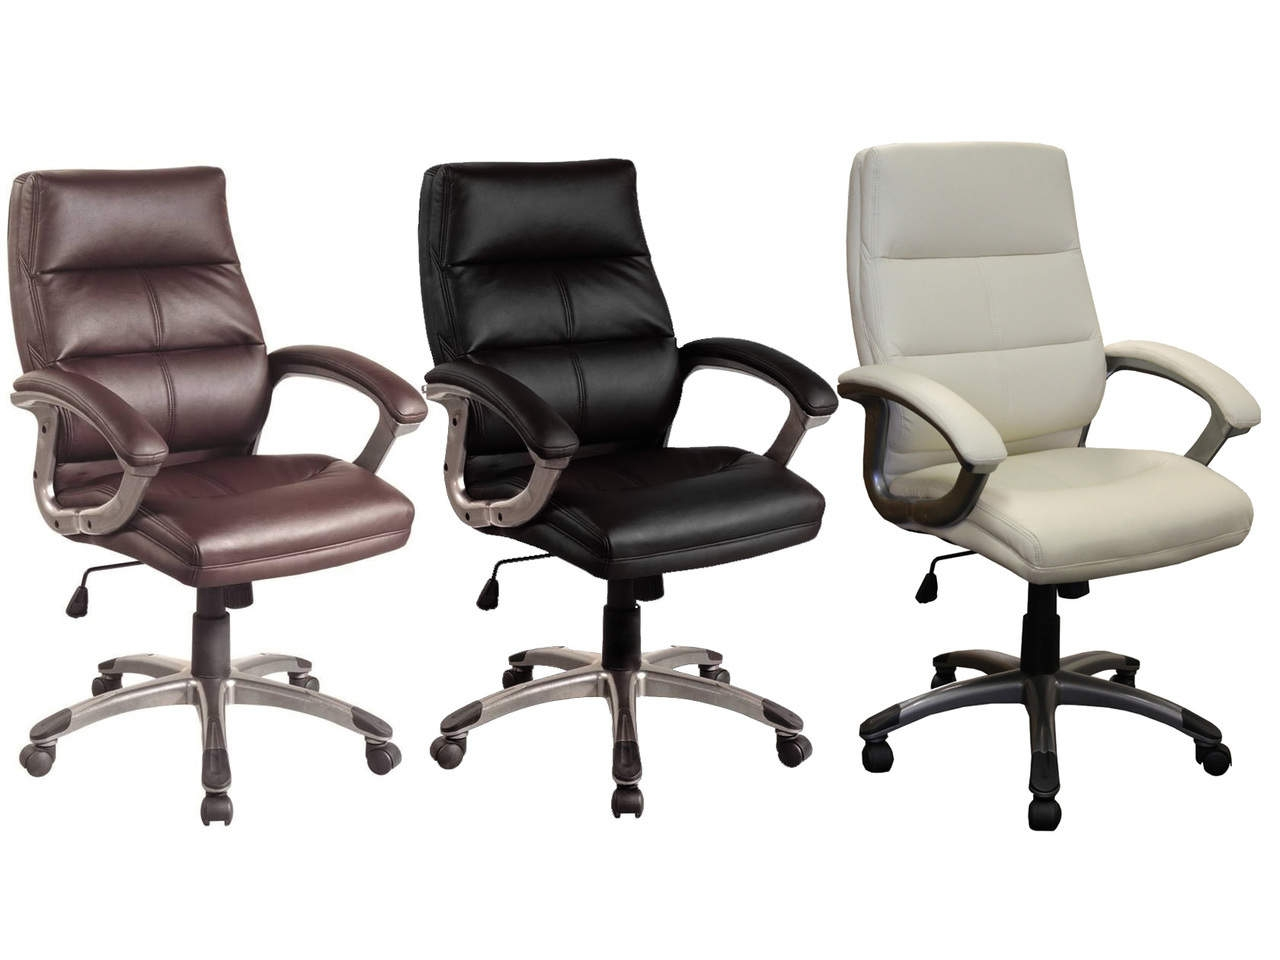 Greenwich Medium Back PU Leather Executive Chair in Black, Brown or Cream